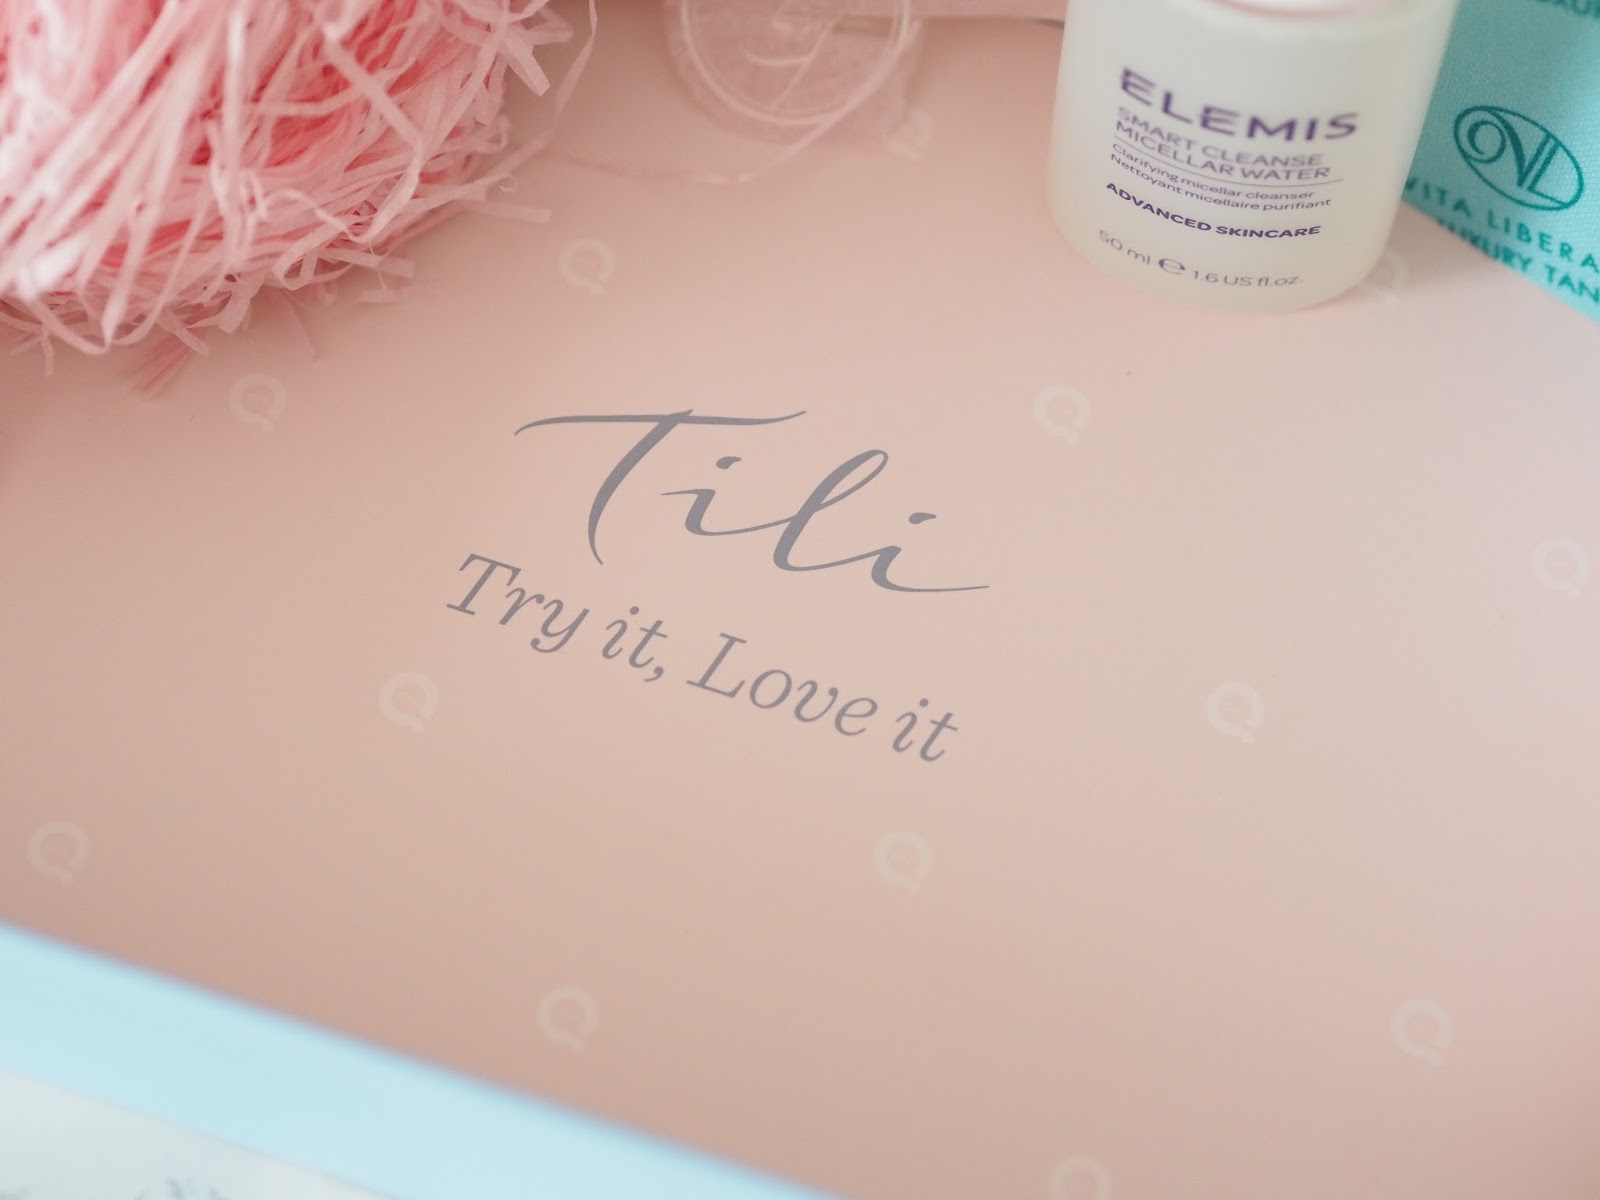 TILI beauty box QVC review